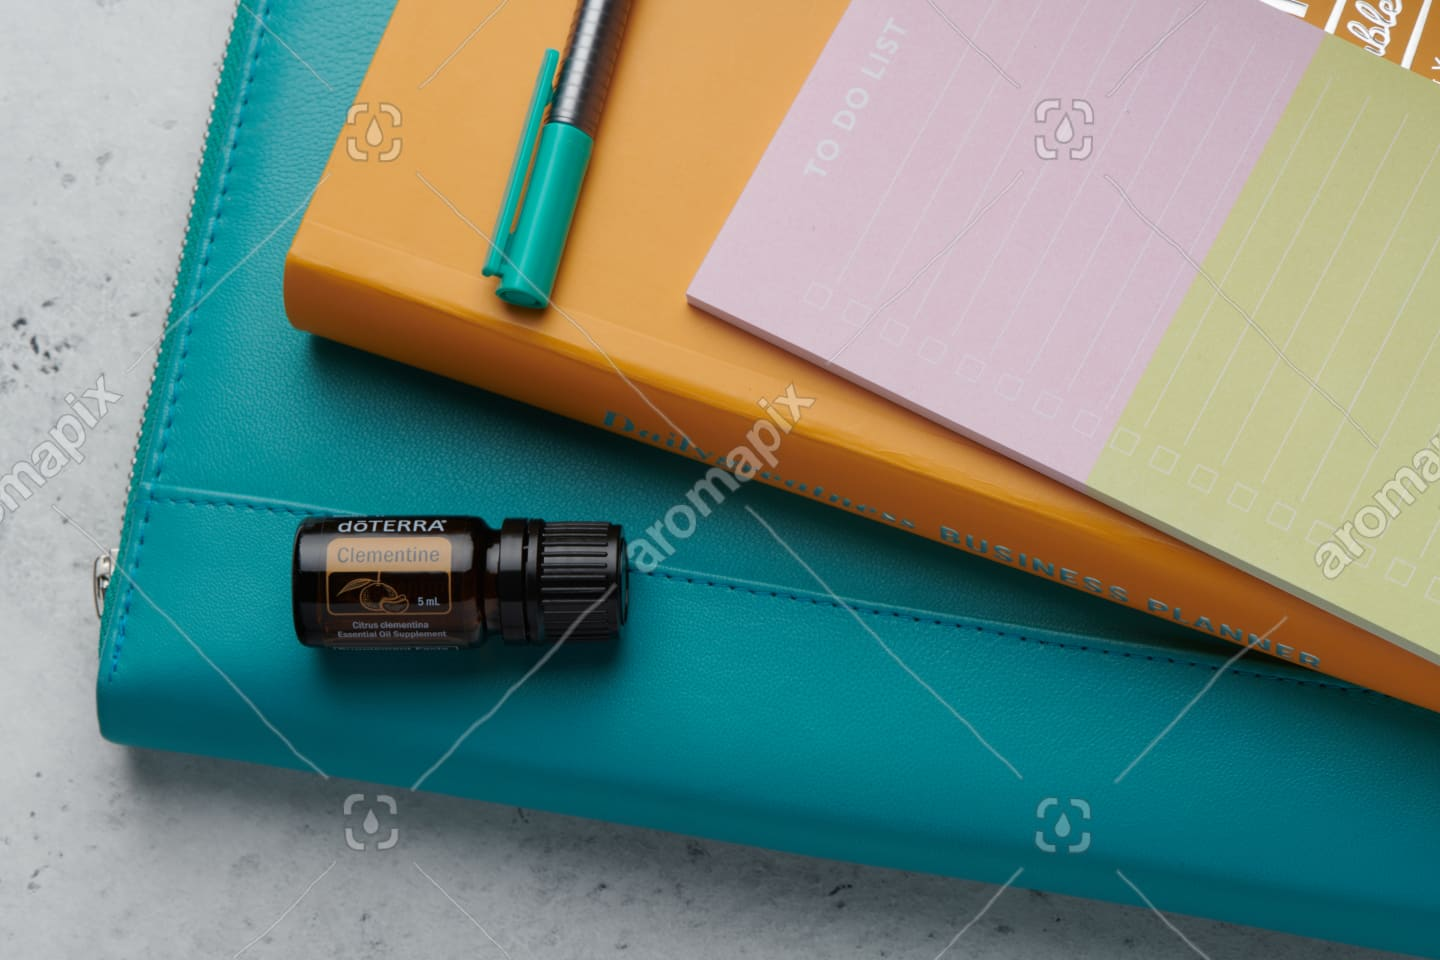 doTERRA Clementine with business tools